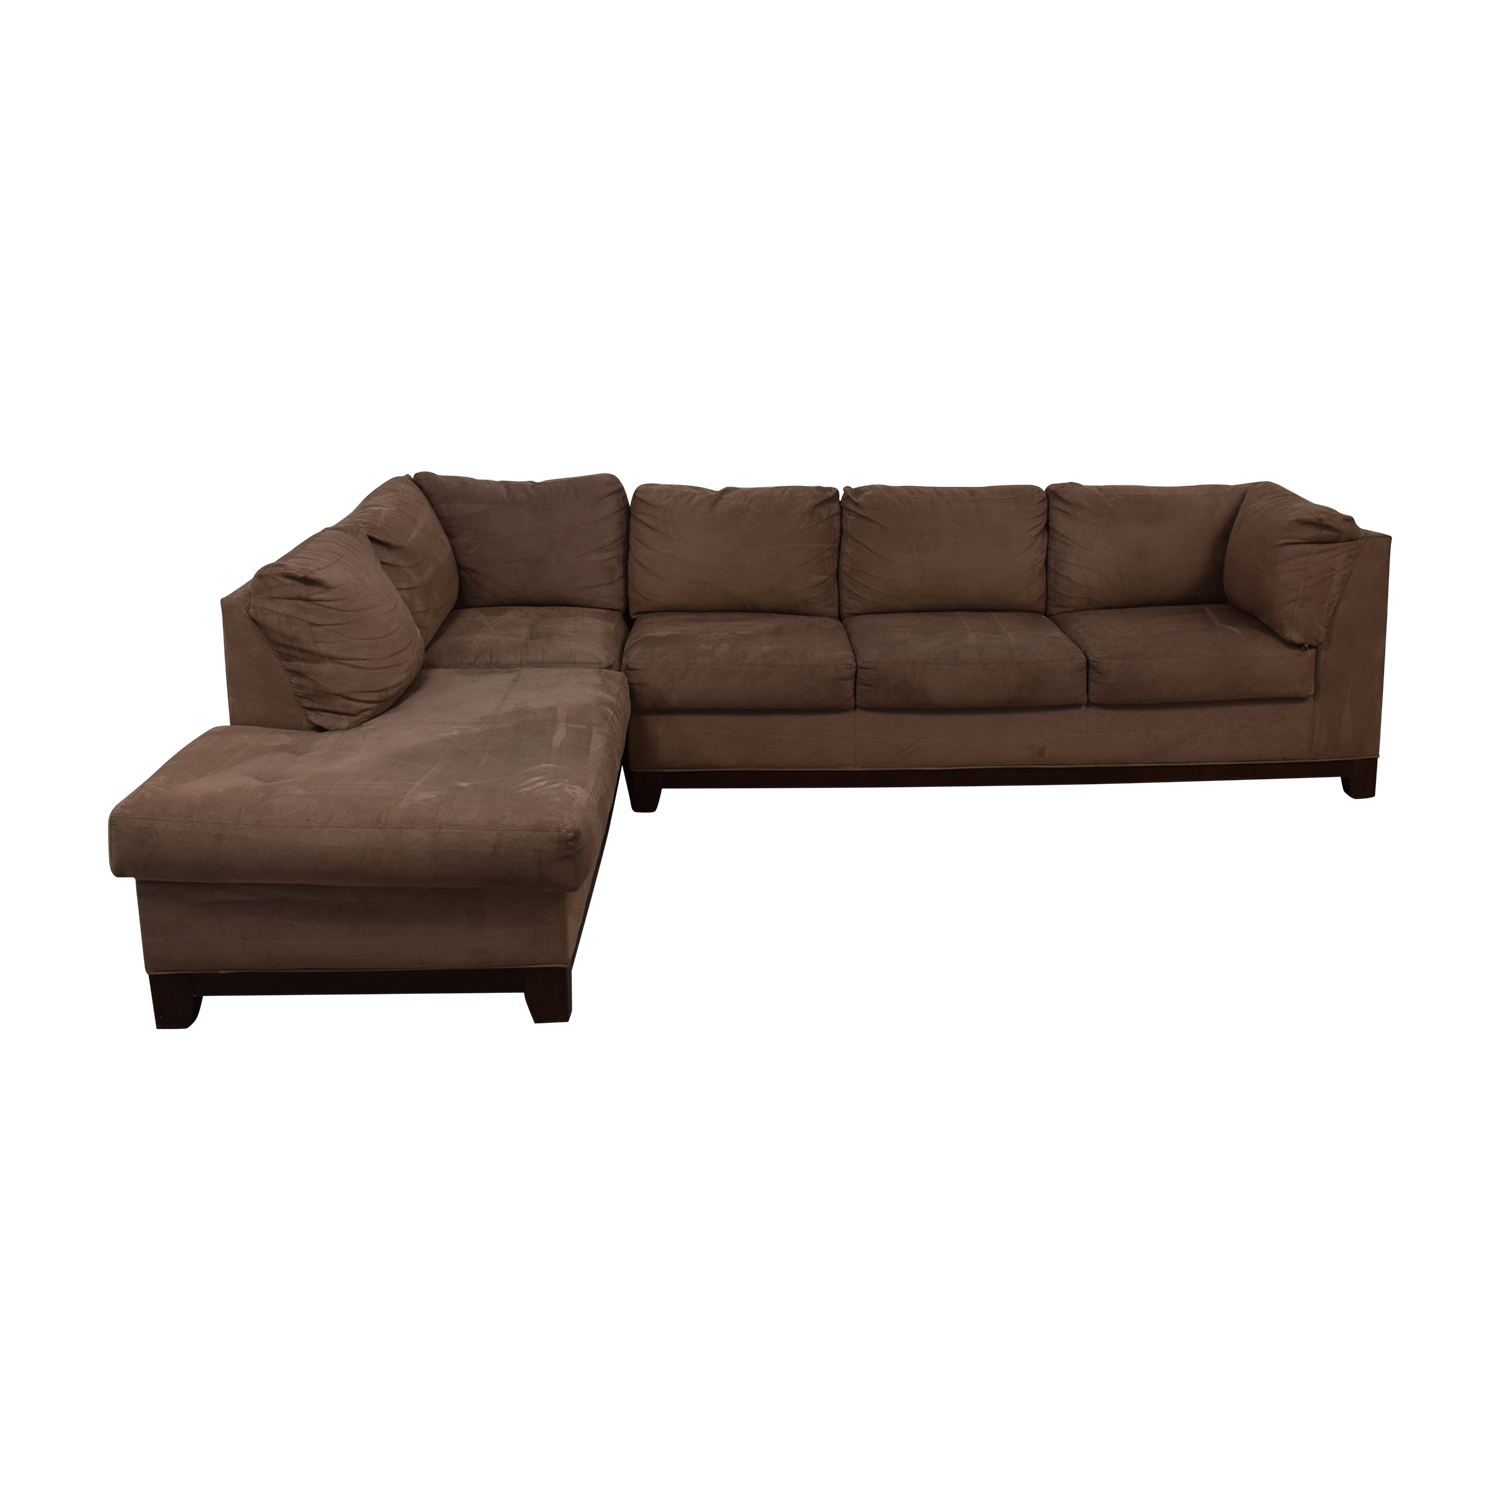 Door Store Door Store Beige Chaise Sectional beige